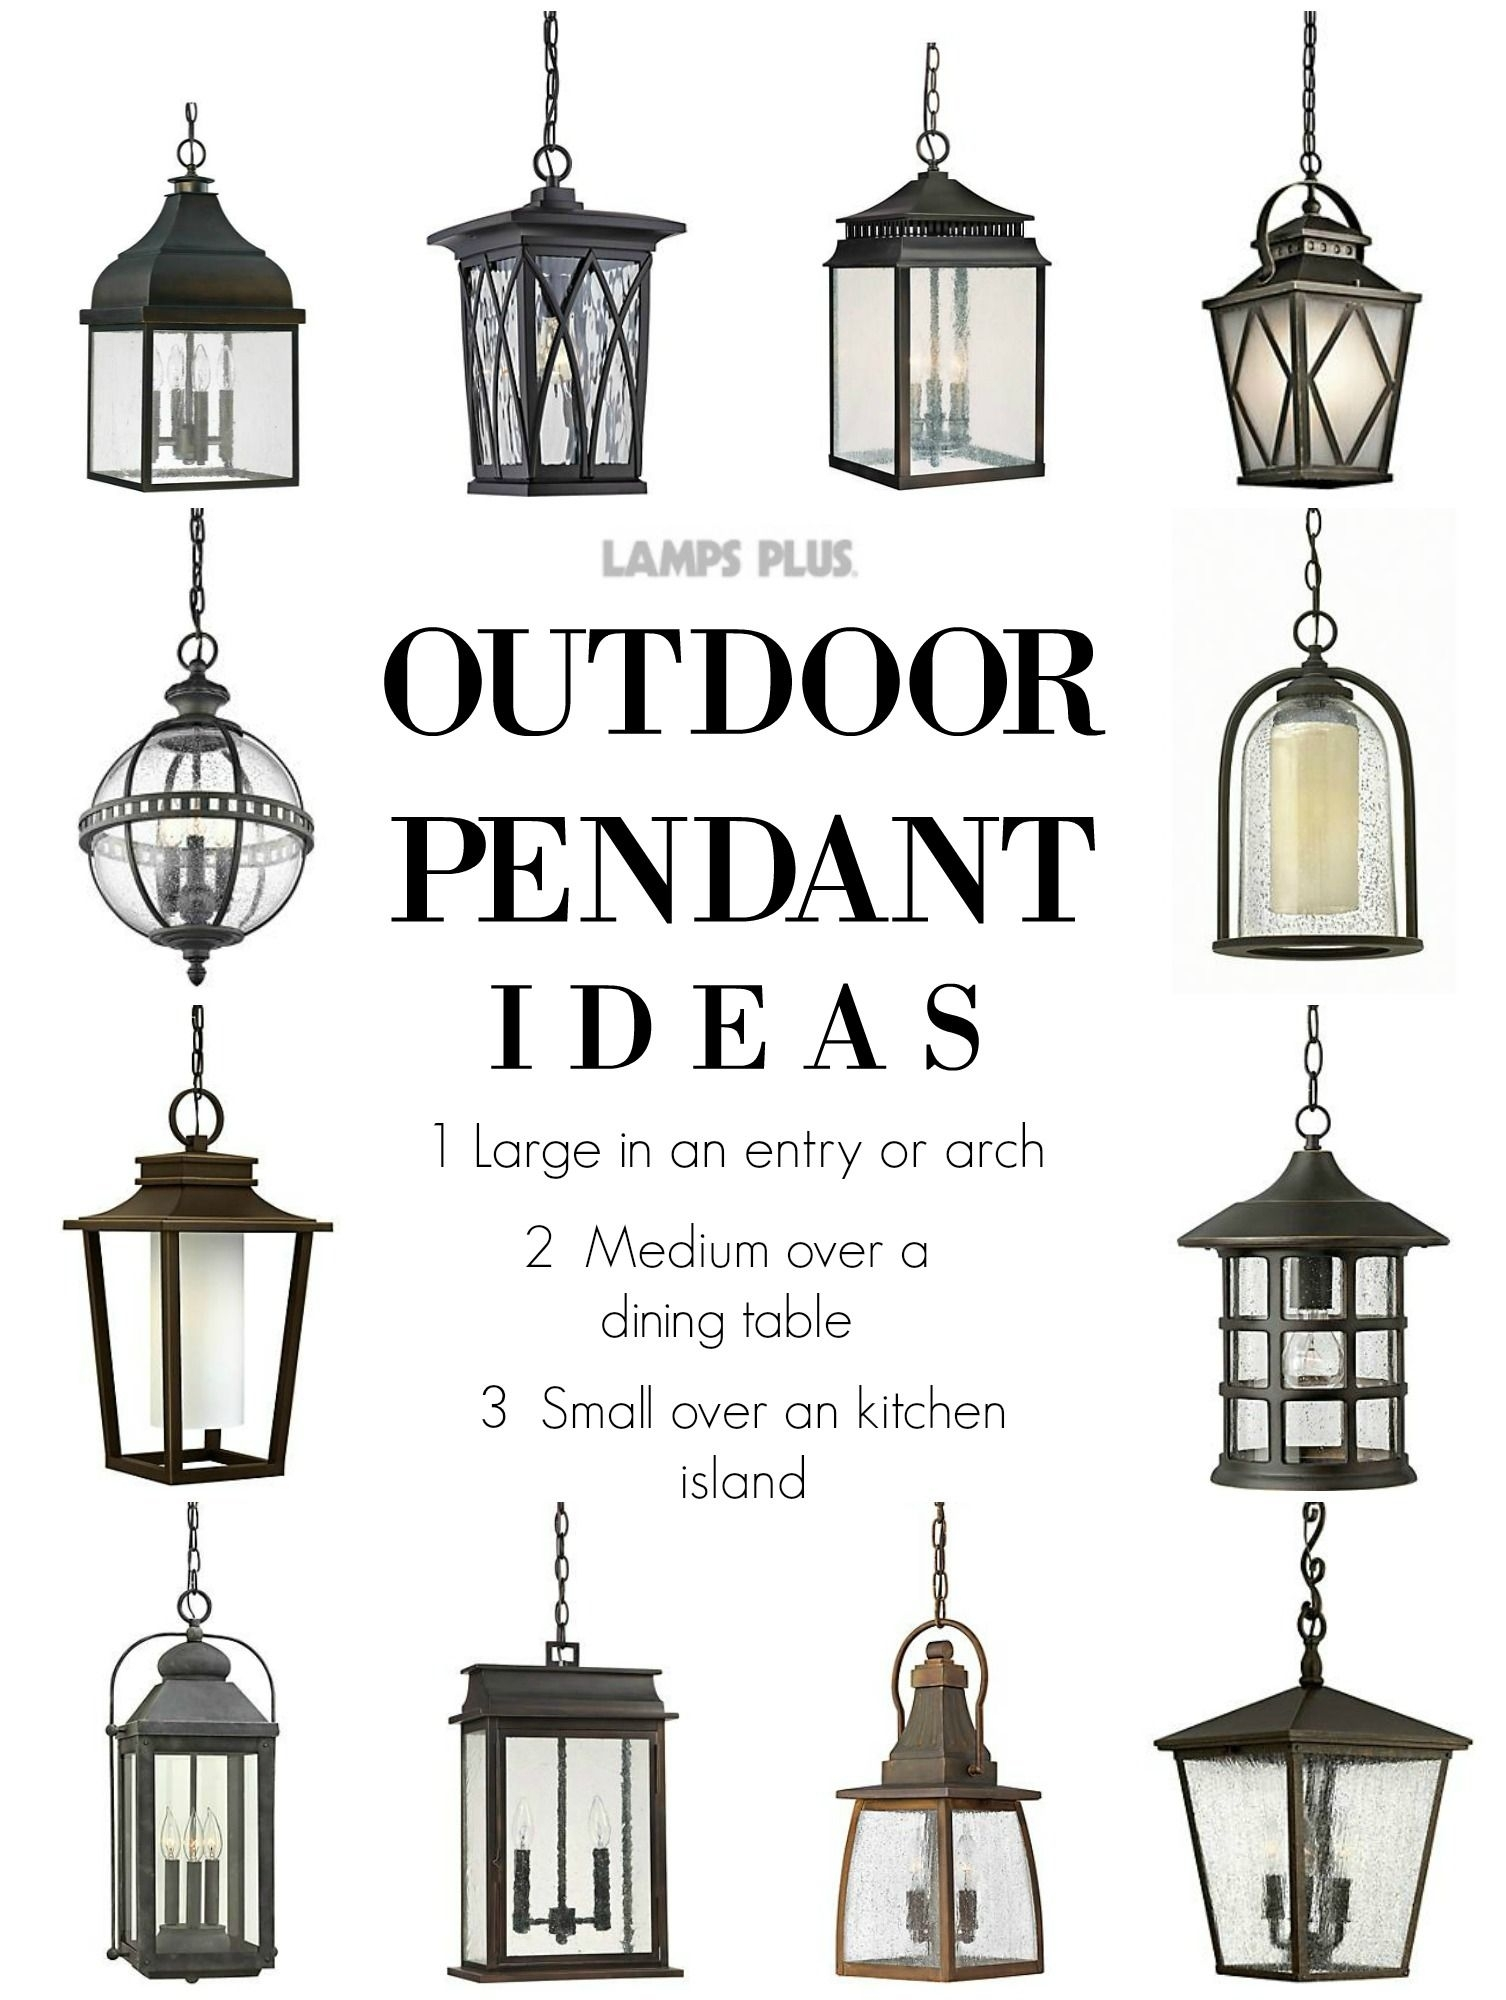 Outdoor Lighting - Outdoor Pendant Ideas From @lampsplus intended for Outdoor Pendant Lanterns (Image 8 of 20)